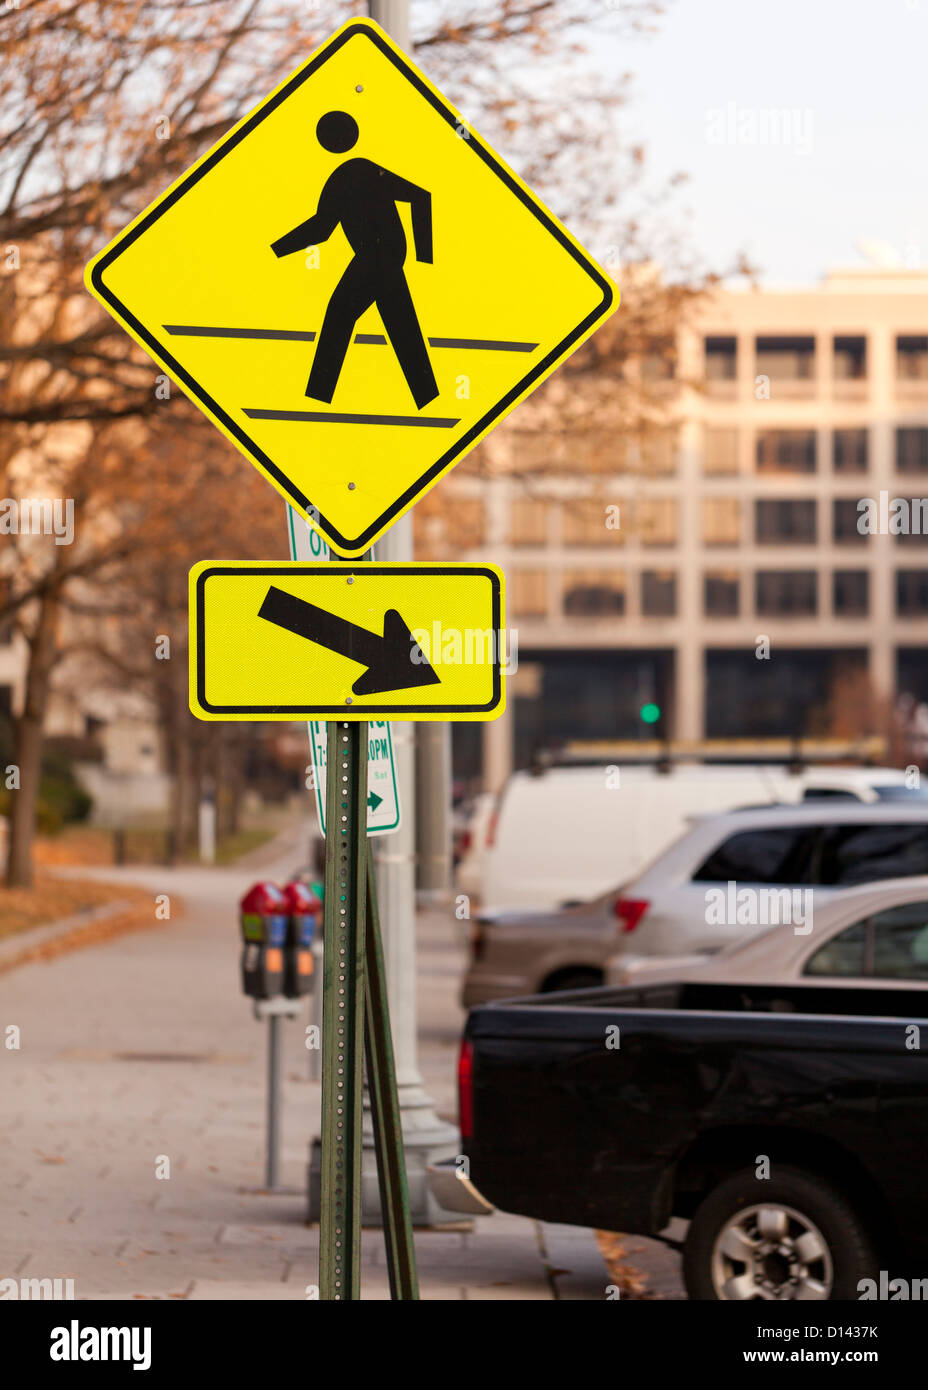 Pedestrian crosswalk sign - Stock Image